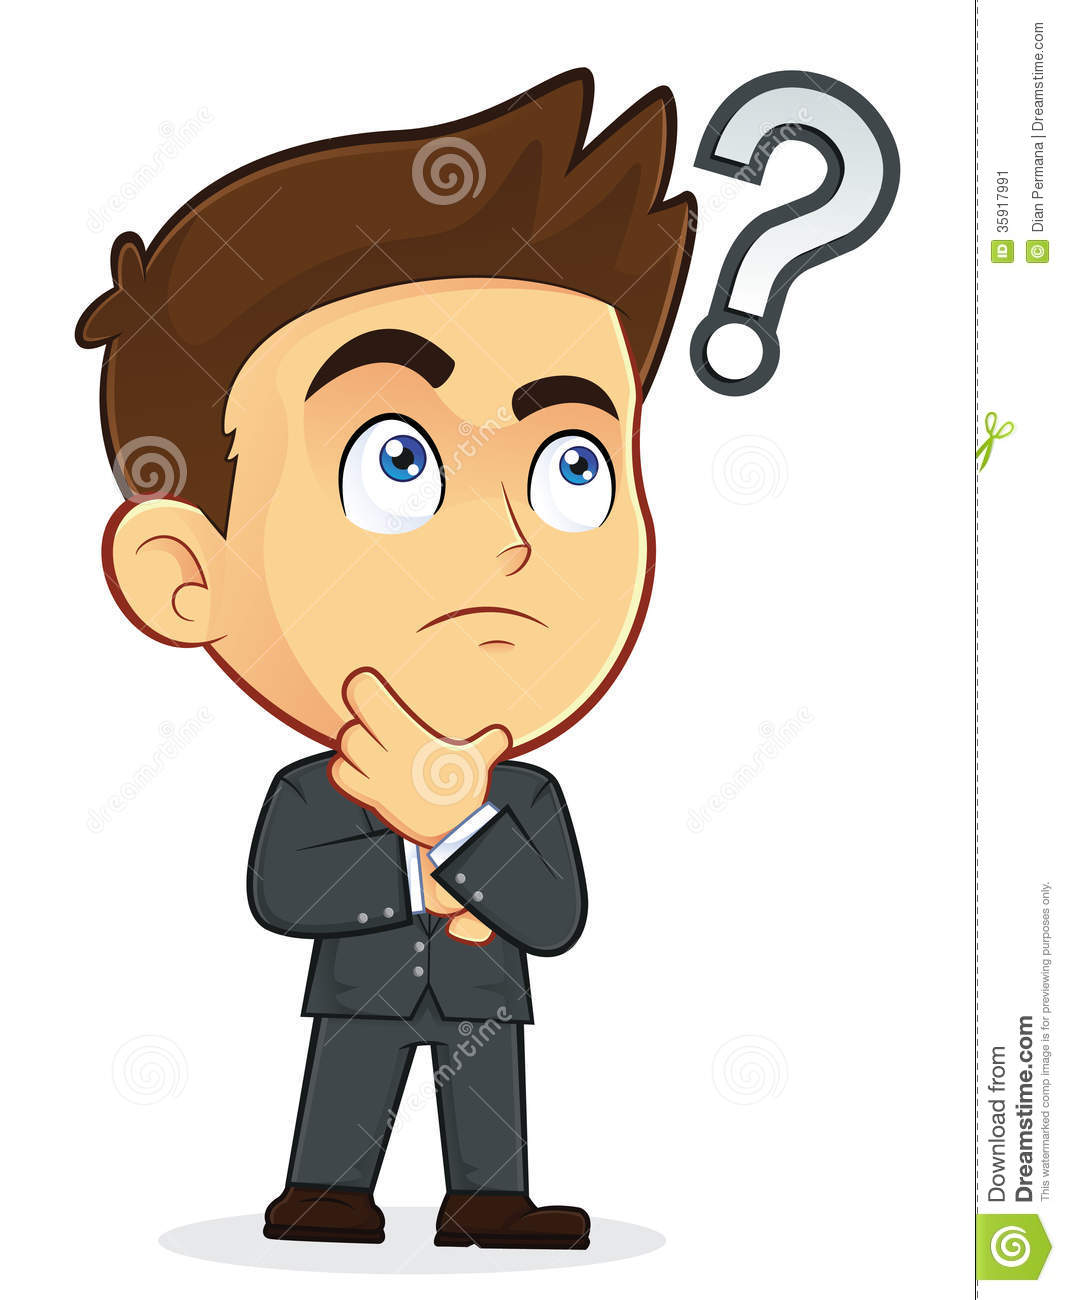 Pics photos clip art cartoon scientist with question mark stock - Guess 20clipart